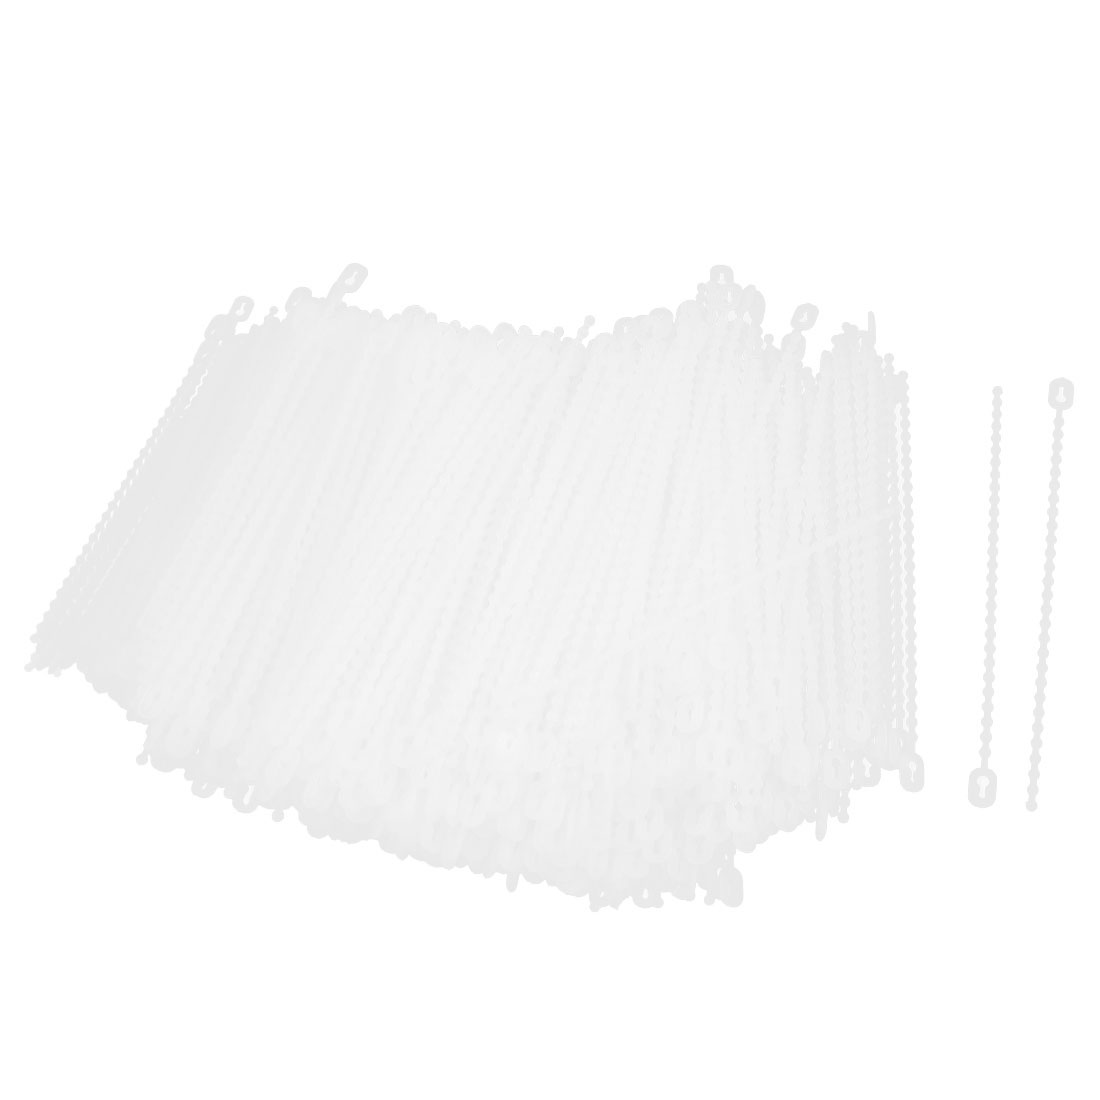 1000Pcs 2.5mm x 100mm Self-Locking Plastic Wrap Cable Loop Ties White